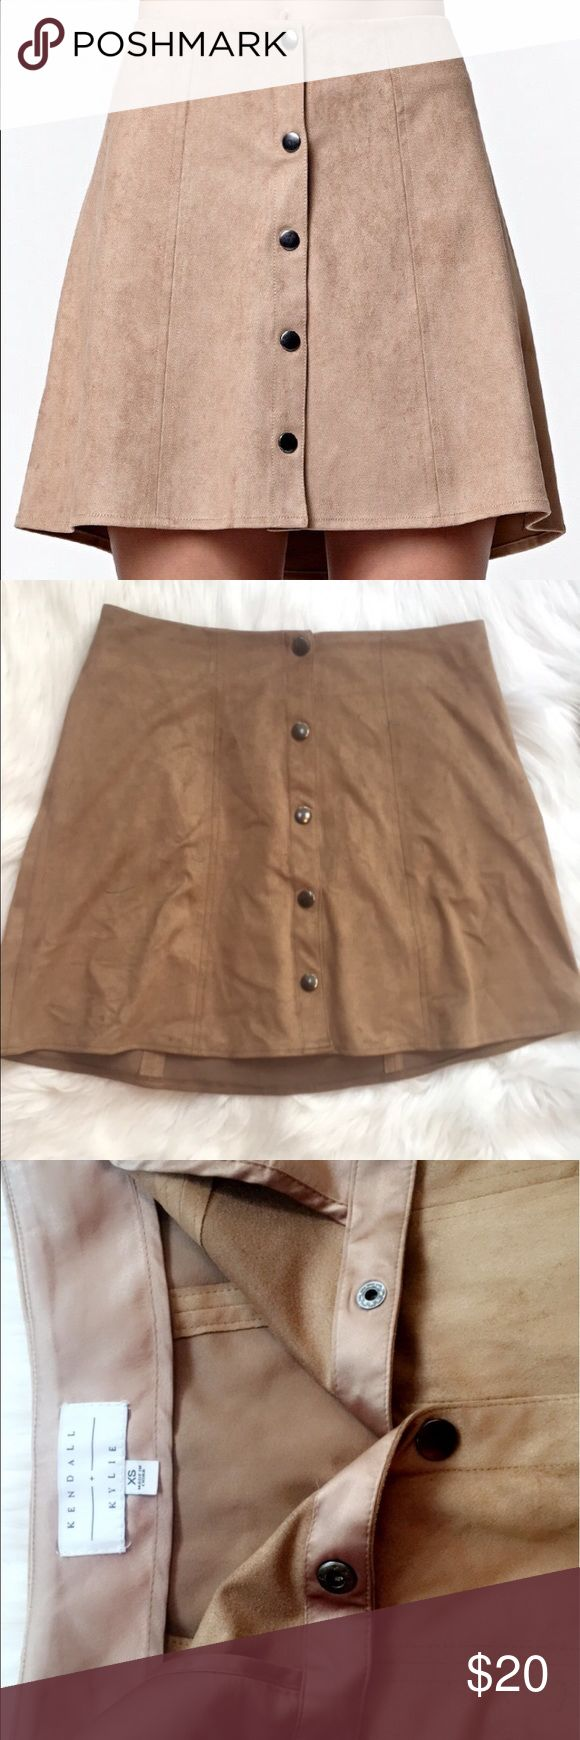 Kendall & Kylie Suede Skirt These are out of stock forever, from Kendall X Kylie Fall Collection. My skirt only has a few markings from a blue pen, and I haven't tried to get the stains out myself so they still could come out. Make me reasonable offers!!! Fits waist size 23-26 I think this was before they made all of their clothes super tiny 😂😂😂 Kendall & Kylie Skirts